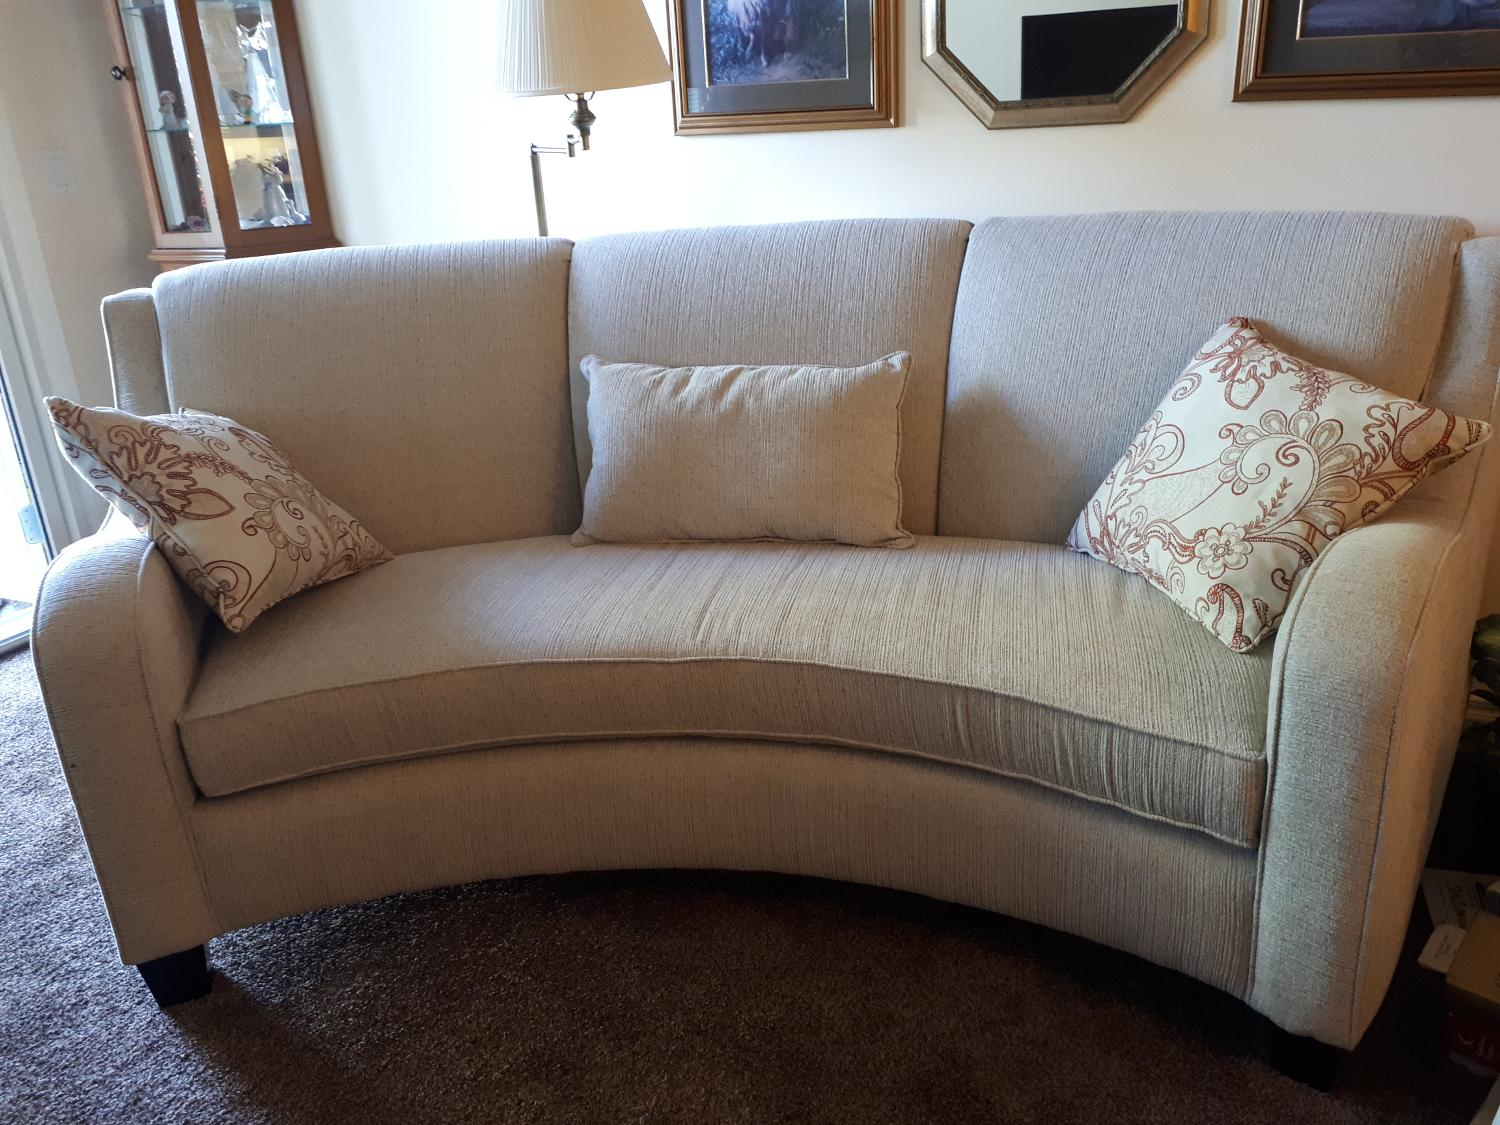 Find More Curved Fabric Sofa For Sale At Up To 90 Off